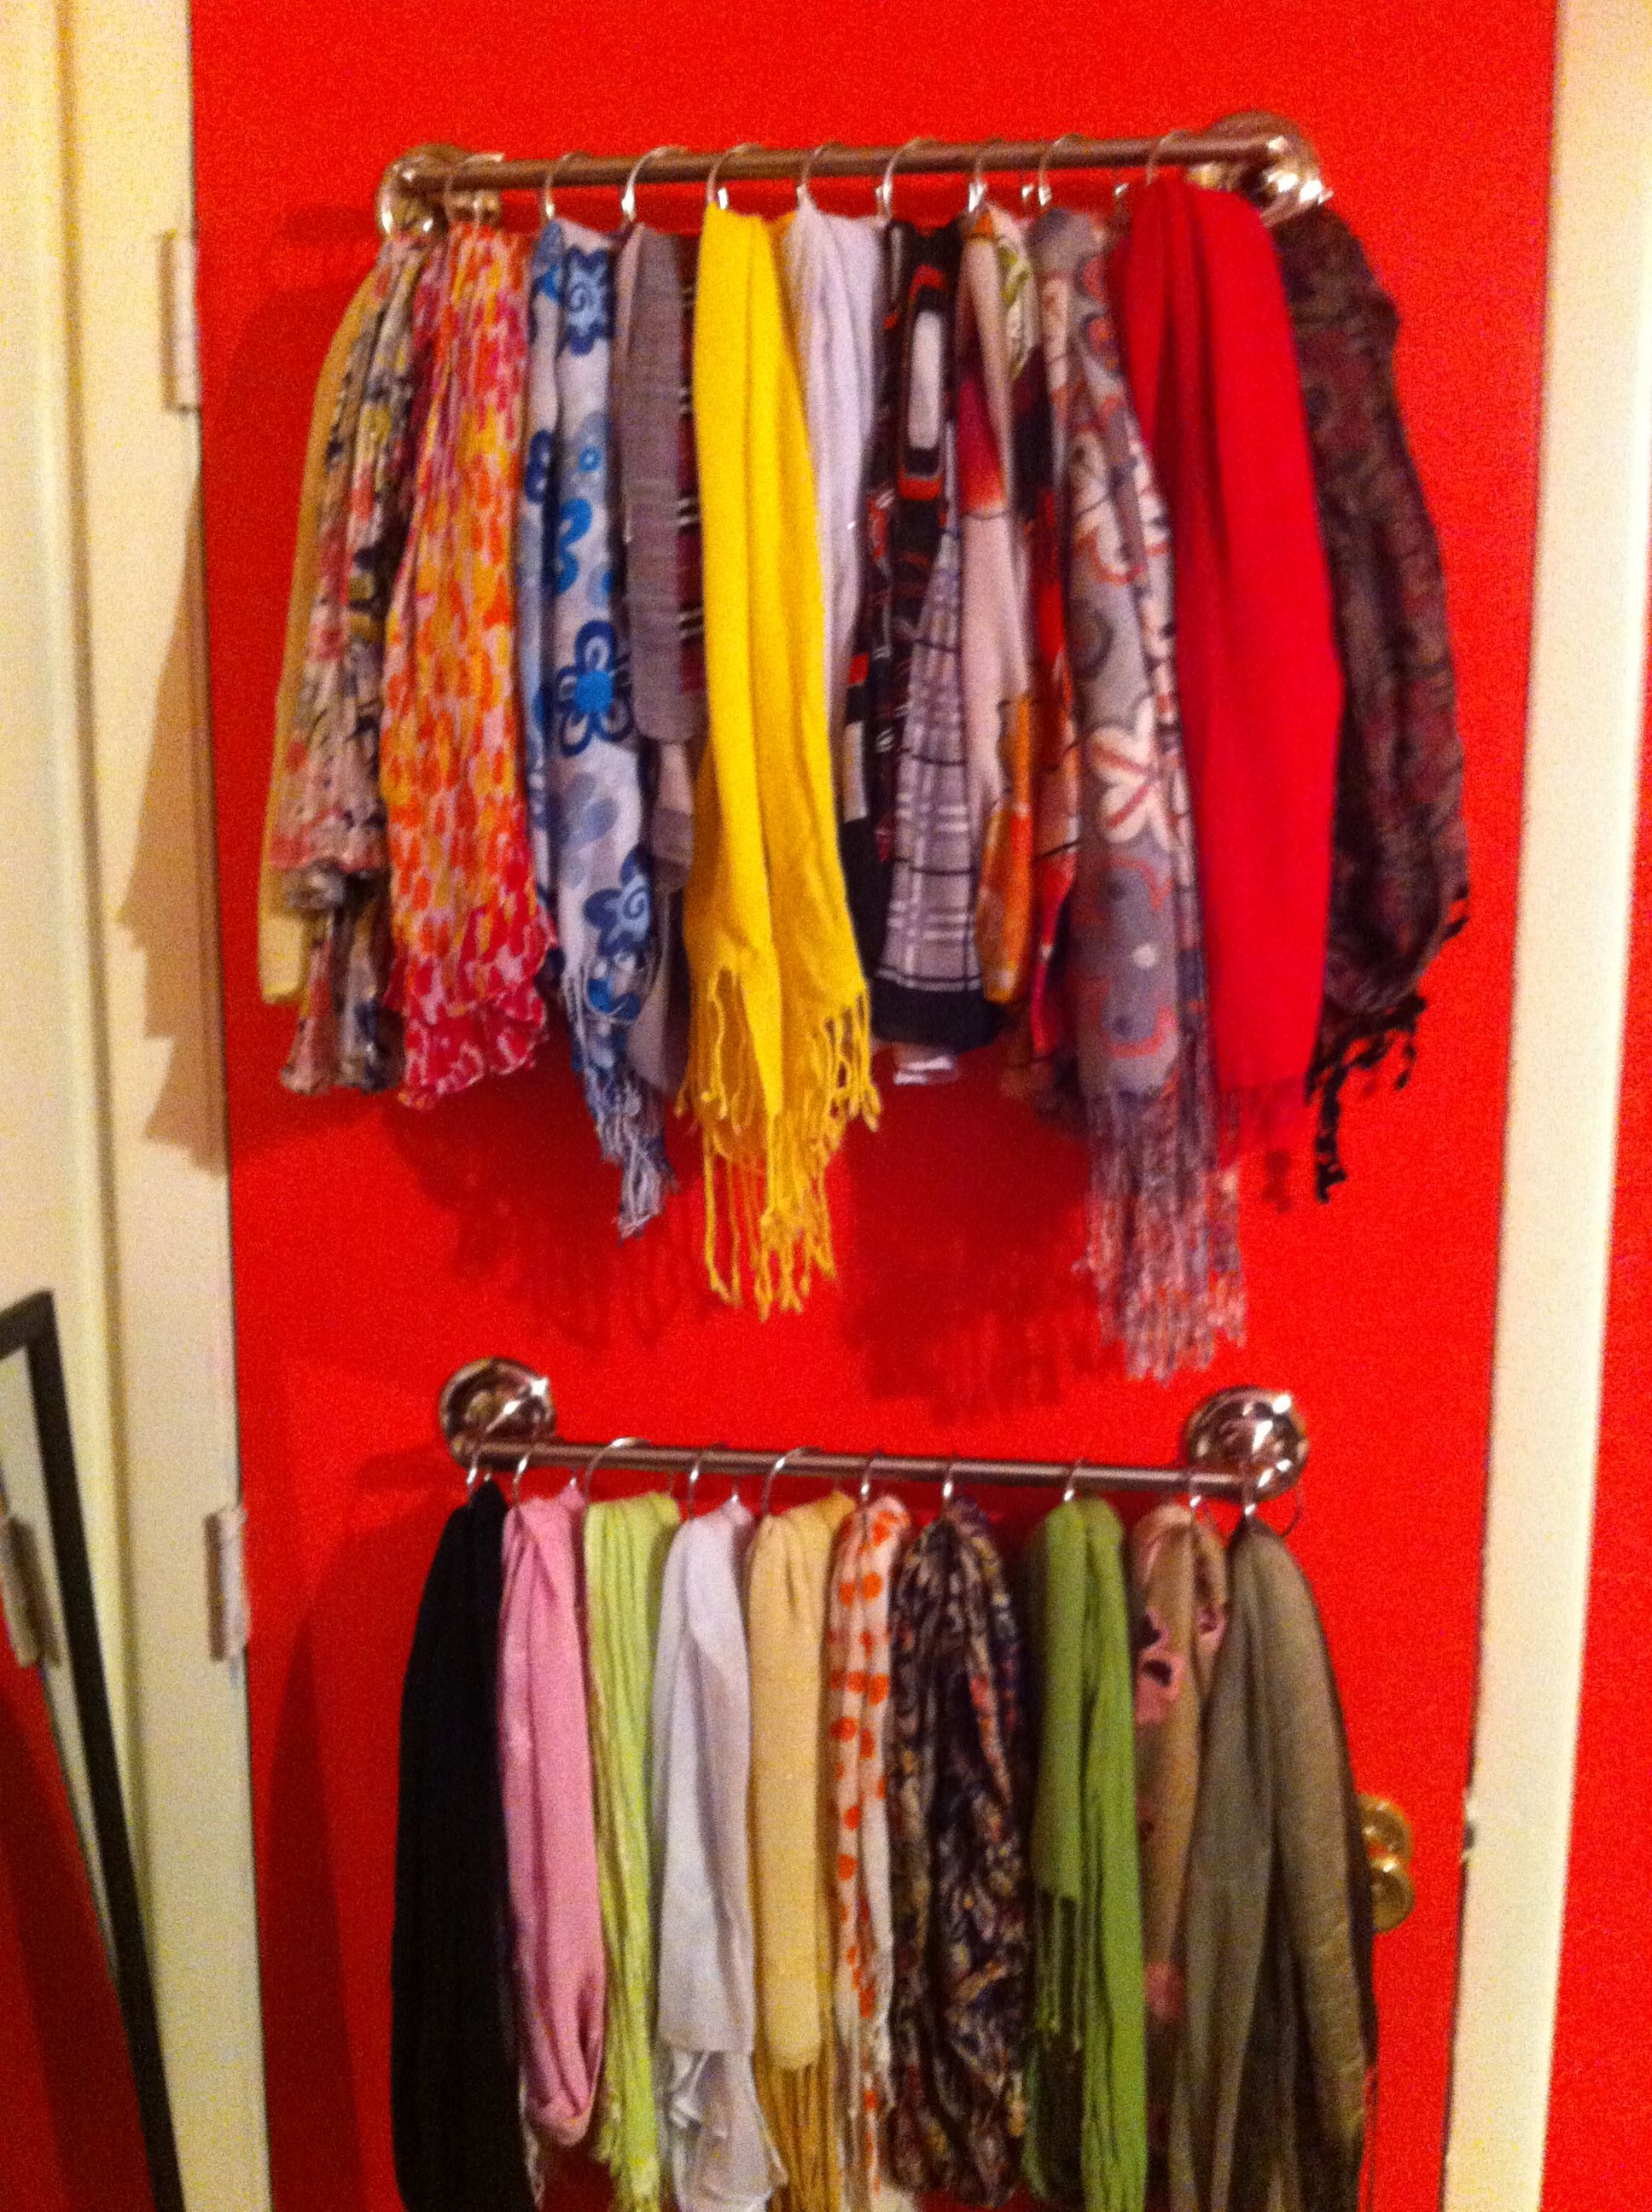 Scarf Organizer With A Towel Rack And Shower Rings